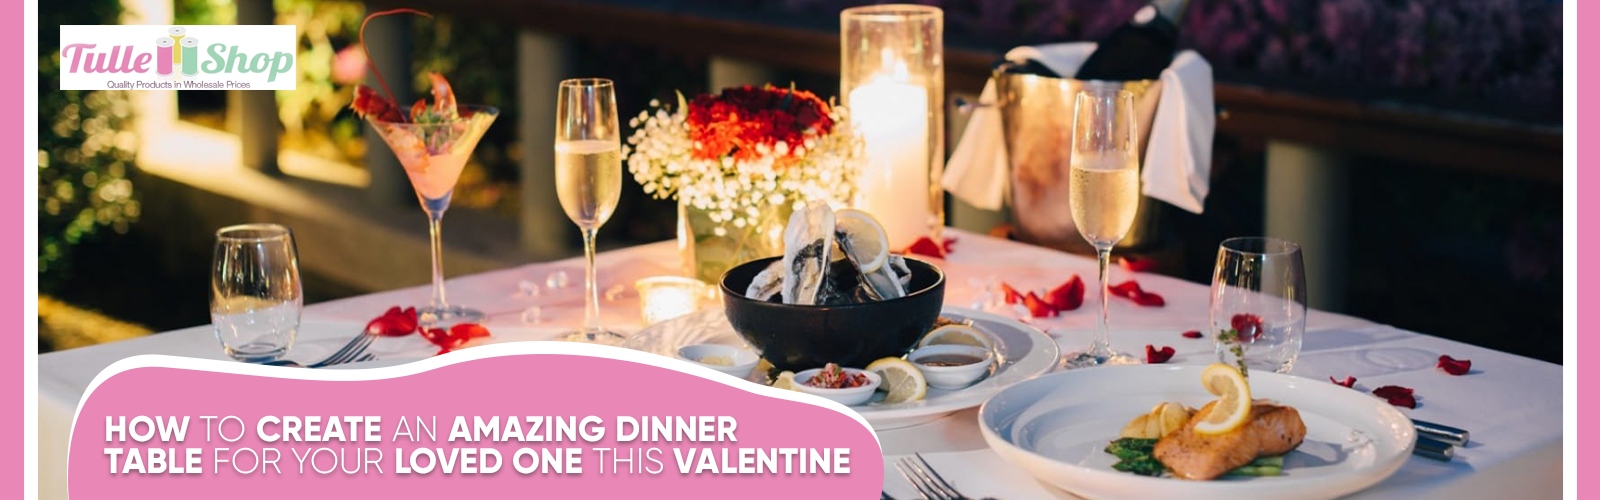 How to Create an Amazing Dinner Table for Your Loved One This Valentine